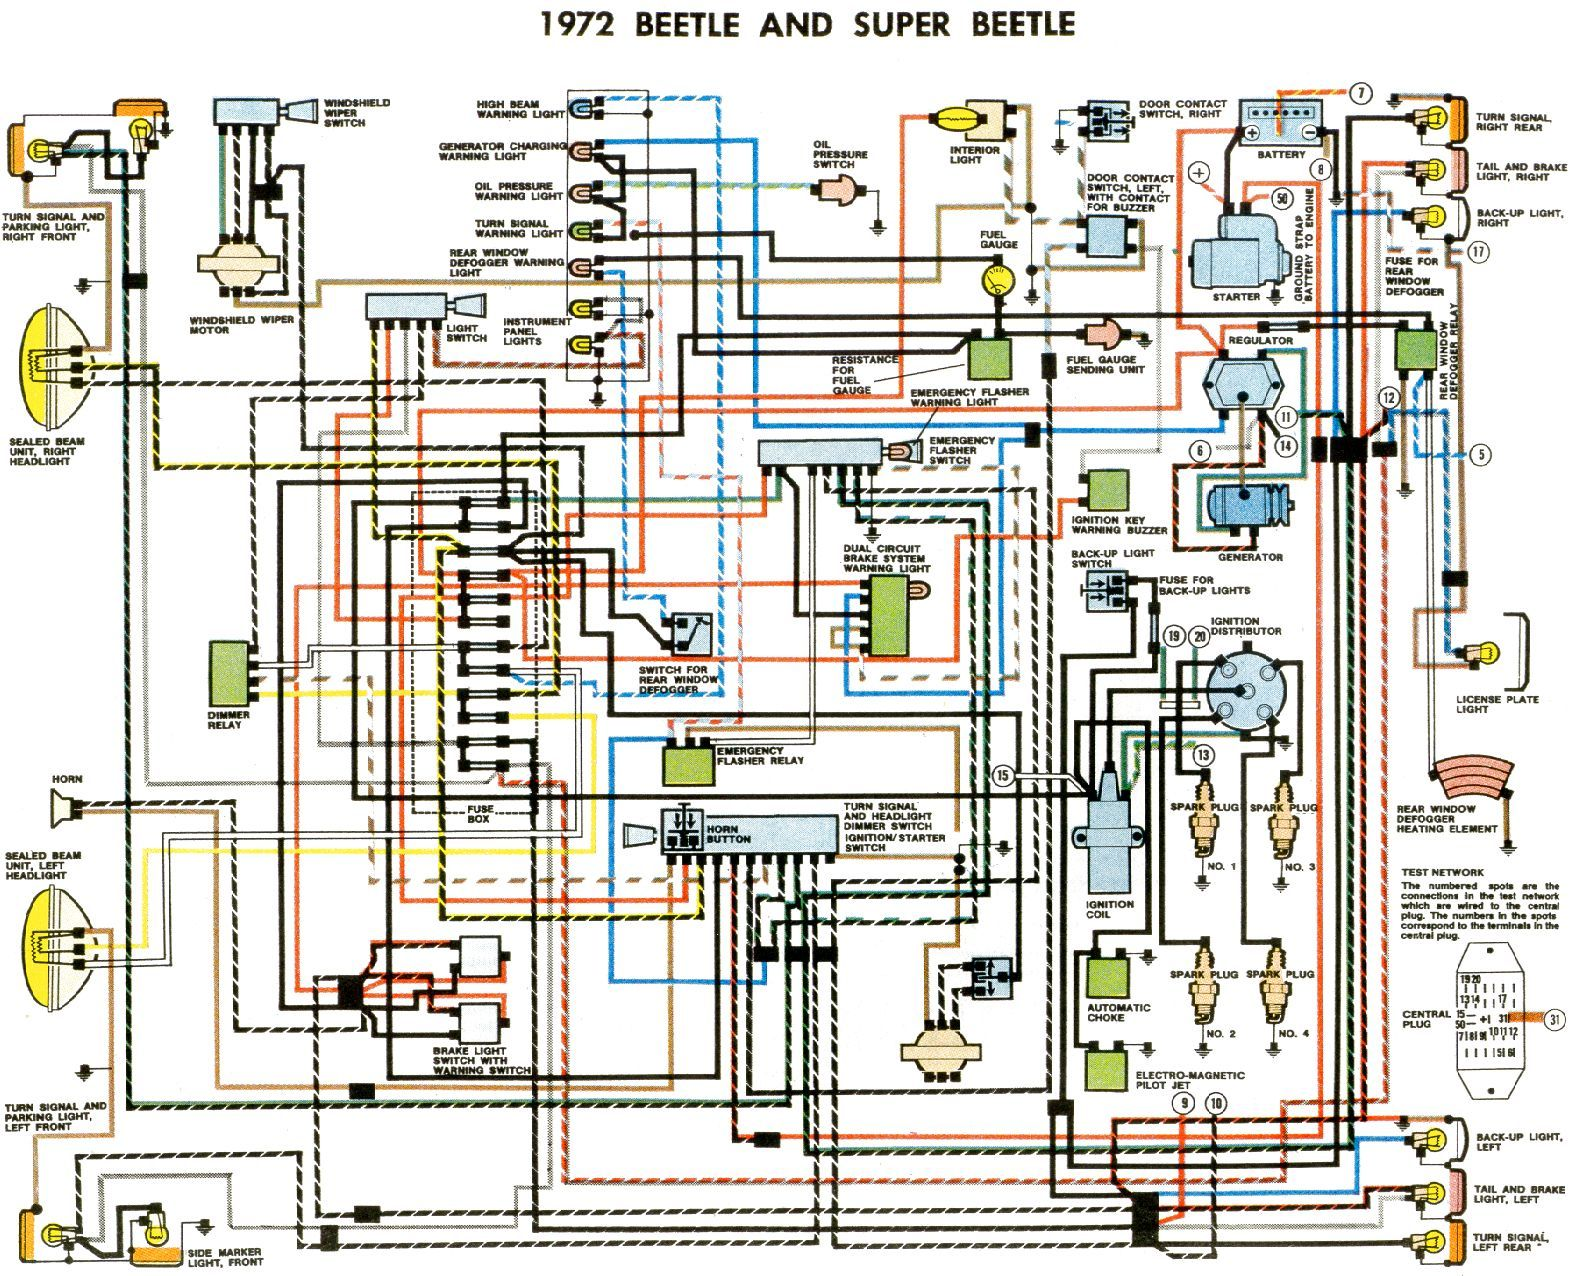 48817ac6ffbdd3287fe627e7db60a9d1 72 wiring diagram jpg; 1582 x 1276 (@46%) vw pinterest 1971 vw super beetle wiring diagram at bayanpartner.co